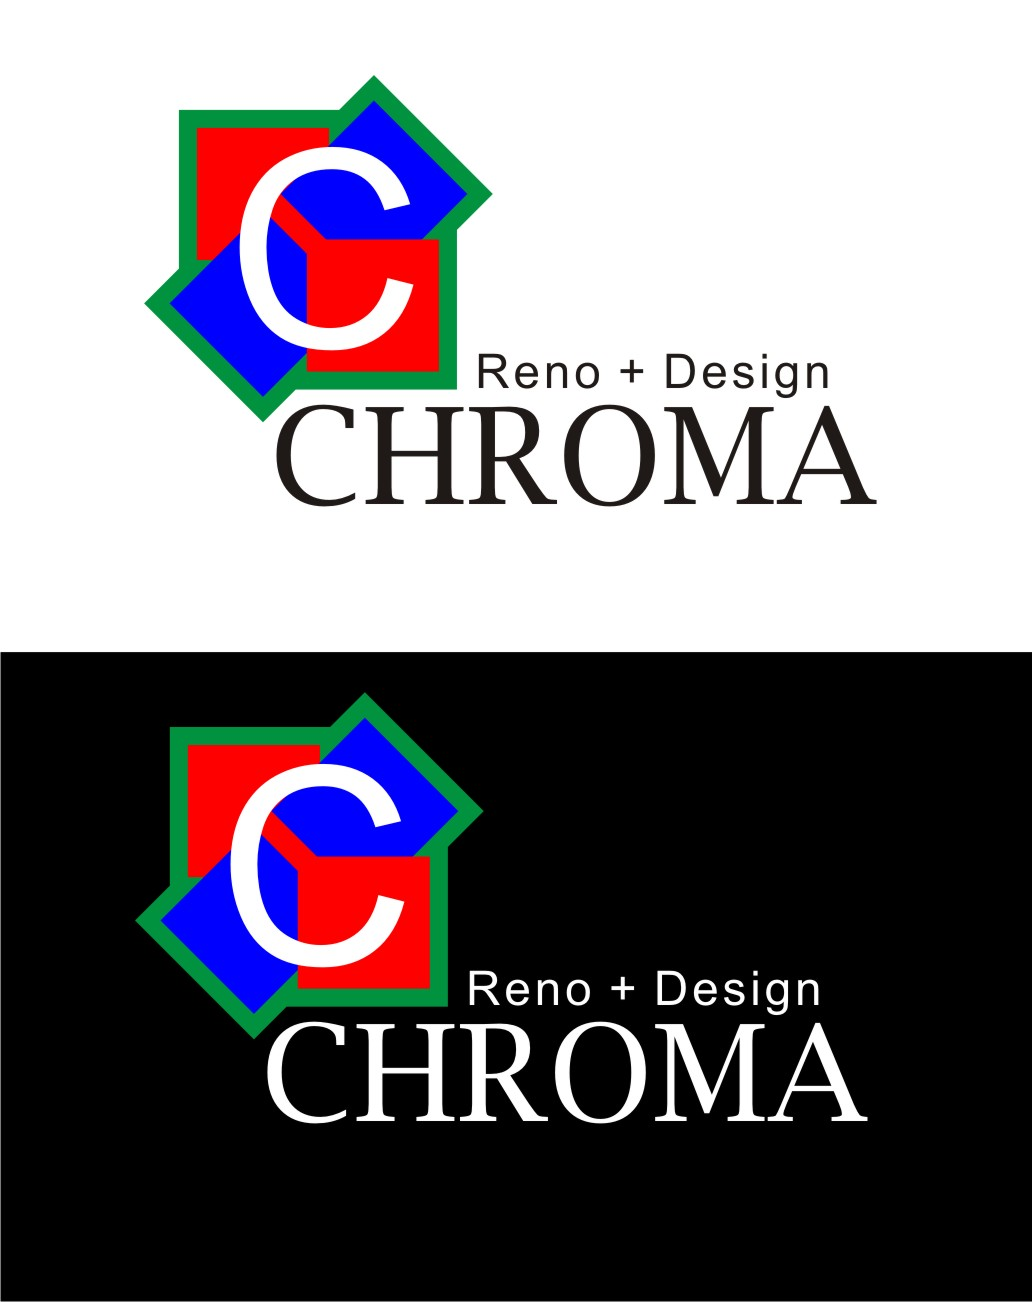 Logo Design by Yuda Hermawan - Entry No. 238 in the Logo Design Contest Inspiring Logo Design for Chroma Reno+Design.